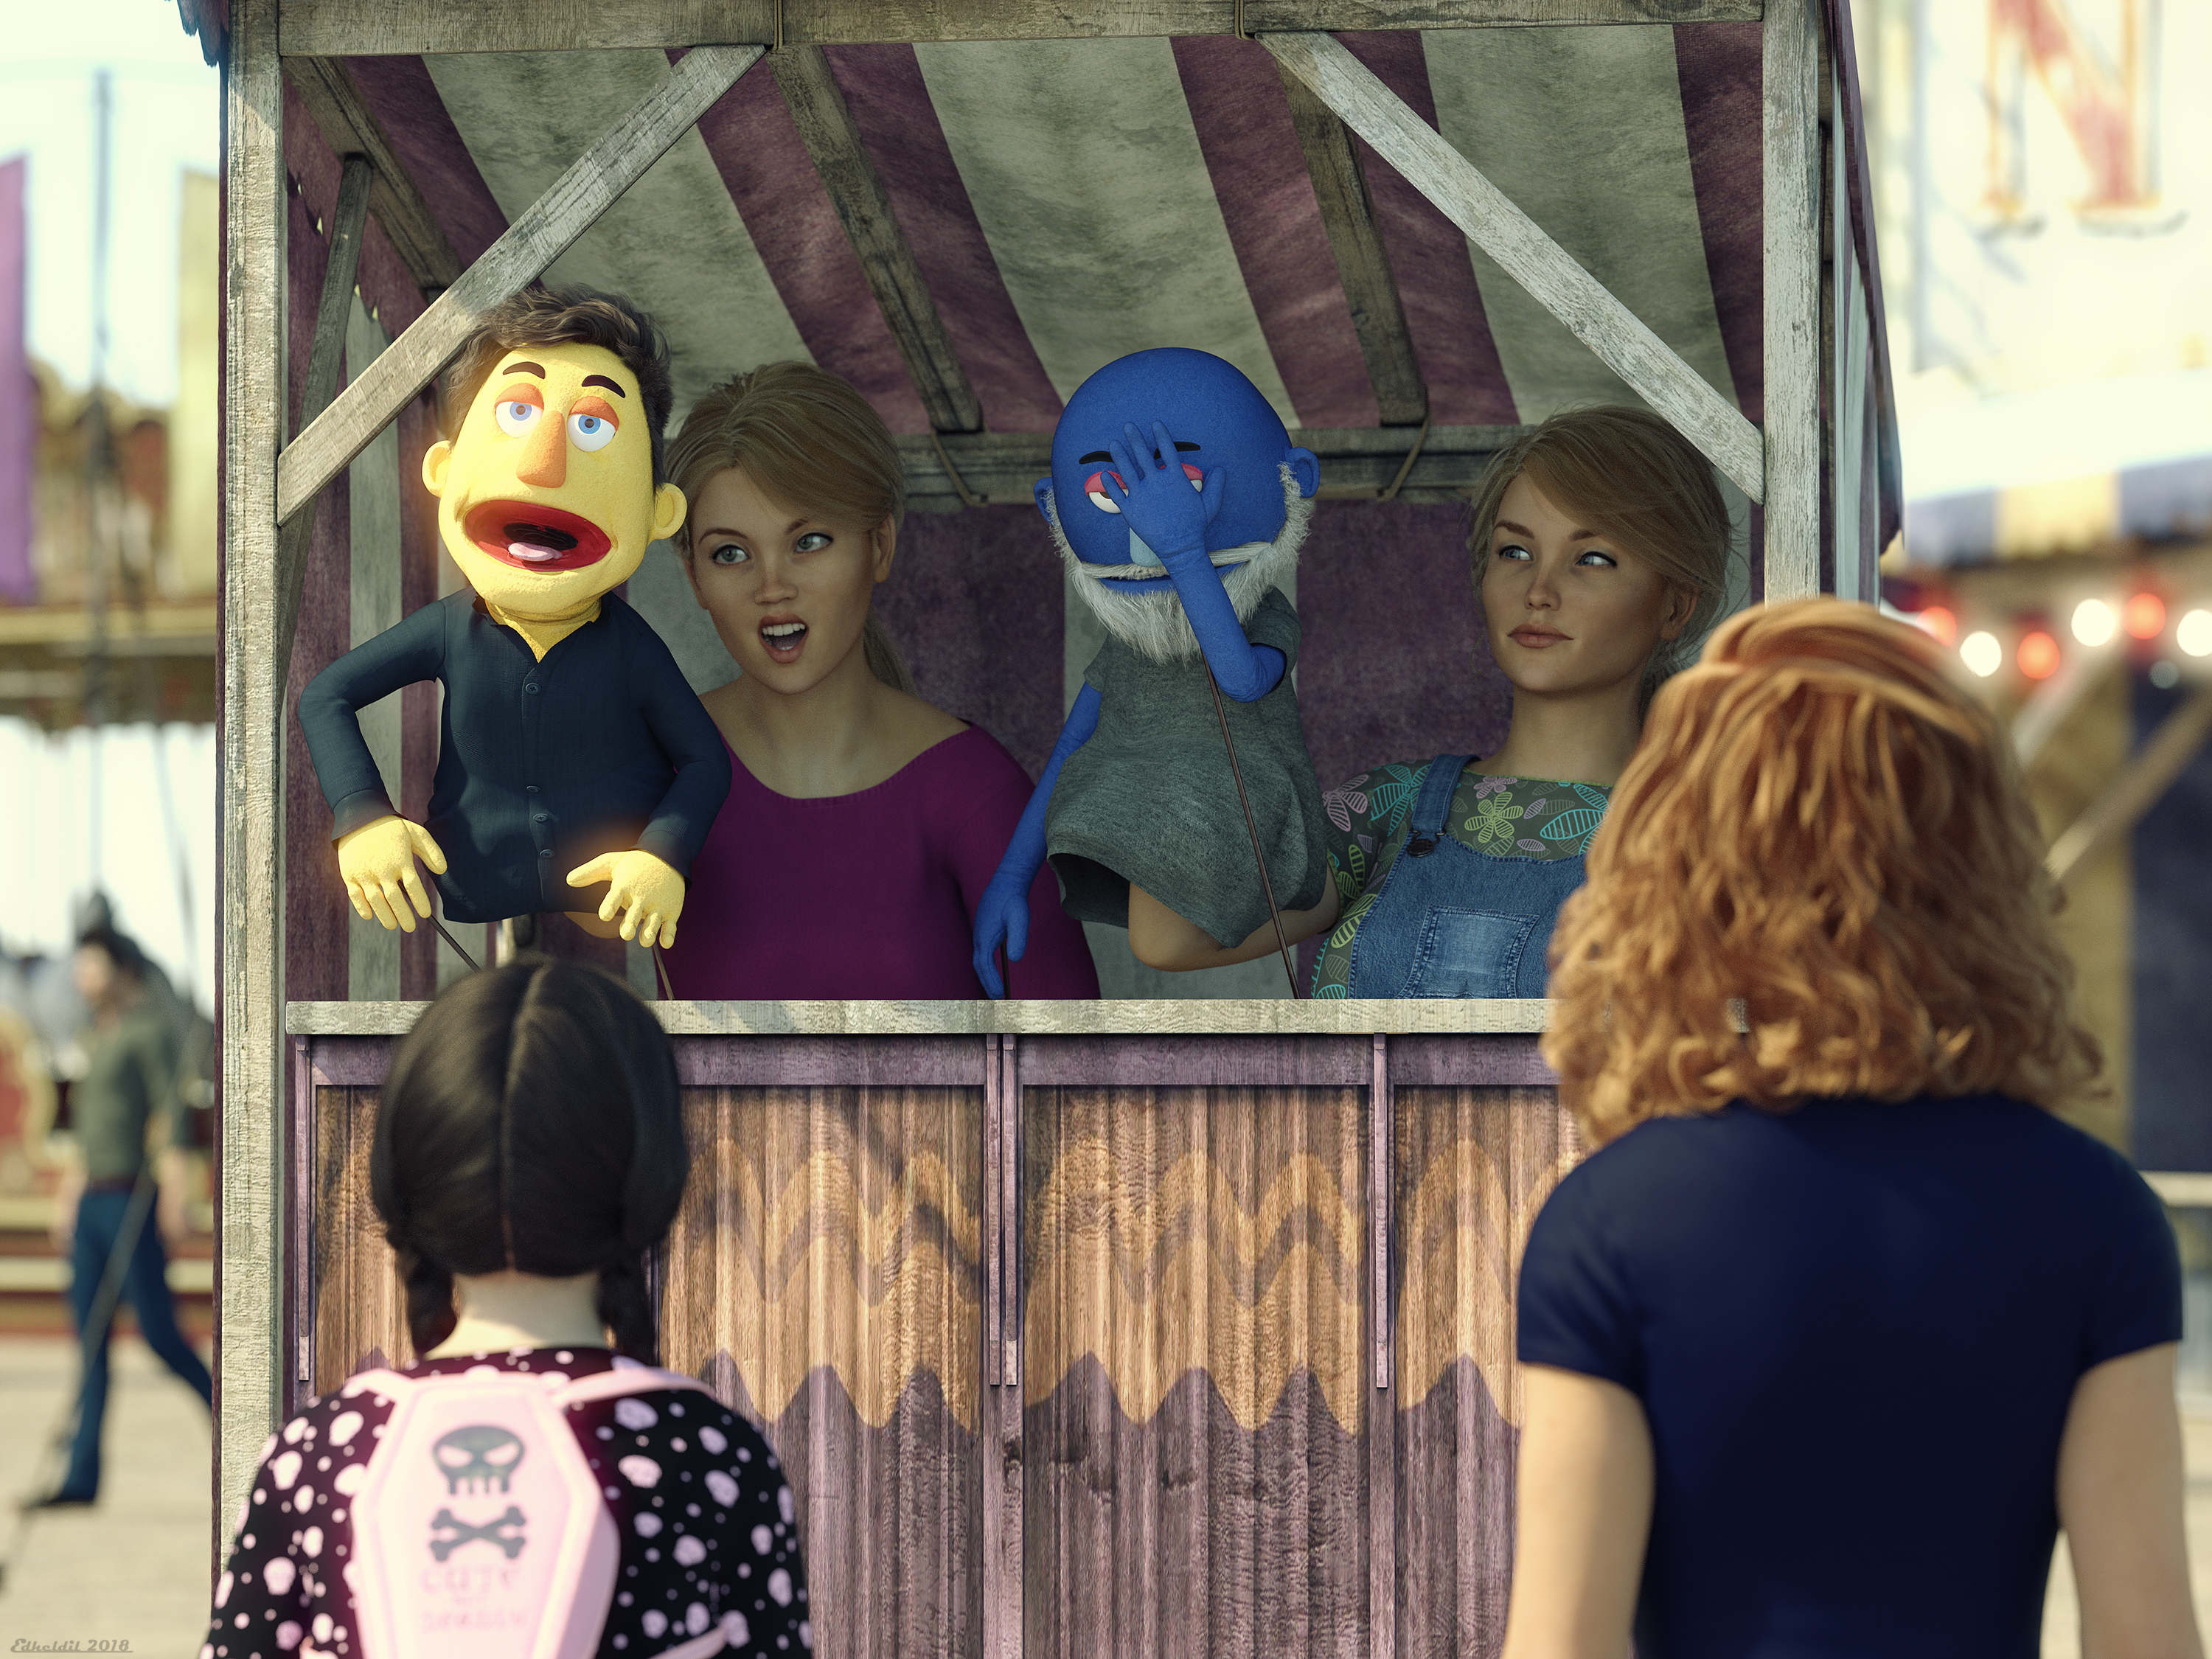 The Puppet Show!